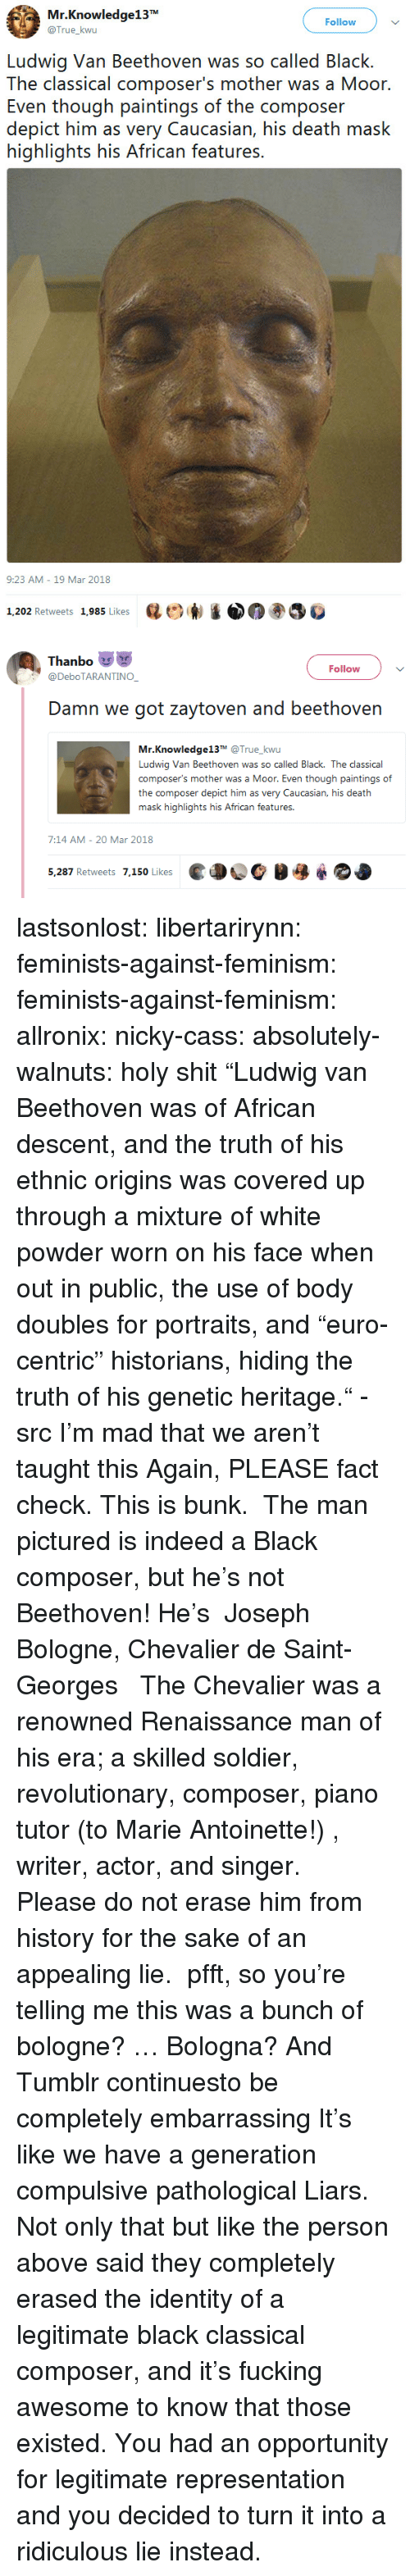 "fucking awesome: Mr.Knowledge13  @True_kwu  Follow  Ludwig Van Beethoven was so called Black.  The classical composer's mother was a Moor  Even though paintings of the composer  depict him as very Caucasian, his death mask  highlights his African features.  9:23 AM-19 Mar 2018  1,202 Retweets 1,985 Likes  砝ビ)  ③巻   Thanbo  @DeboTARANTINO  Follow  Damn we got zaytoven and beethovern  Mr.Knowledge13T @True_kwu  Ludwig Van Beethoven was so called Black. The classical  composer's mother was a Moor. Even though paintings of  the composer depict him as very Caucasian, his death  .む  7:14 AM- 20 Mar 2018  ed OC  5,287 Retweets 7,150 Likes lastsonlost:  libertarirynn:  feminists-against-feminism:  feminists-against-feminism: allronix:  nicky-cass:  absolutely-walnuts:  holy shit ""Ludwig van Beethoven was of African descent, and the truth of his ethnic origins was covered up through a mixture of white powder worn on his face when out in public, the use of body doubles for portraits, and ""euro-centric"" historians, hiding the truth of his genetic heritage."" - src   I'm mad that we aren't taught this  Again, PLEASE fact check. This is bunk.  The man pictured is indeed a Black composer, but he's not Beethoven! He's   Joseph Bologne, Chevalier de Saint-Georges    The Chevalier was a renowned Renaissance man of his era; a skilled soldier, revolutionary, composer, piano tutor (to Marie Antoinette!) , writer, actor, and singer.  Please do not erase him from history for the sake of an appealing lie.   pfft, so you're telling me this was a bunch of bologne?  … Bologna?  And Tumblr continuesto be completely embarrassing  It's like we have a generation compulsive pathological Liars.  Not only that but like the person above said they completely erased the identity of a legitimate black classical composer, and it's fucking awesome to know that those existed. You had an opportunity for legitimate representation and you decided to turn it into a ridiculous lie instead."